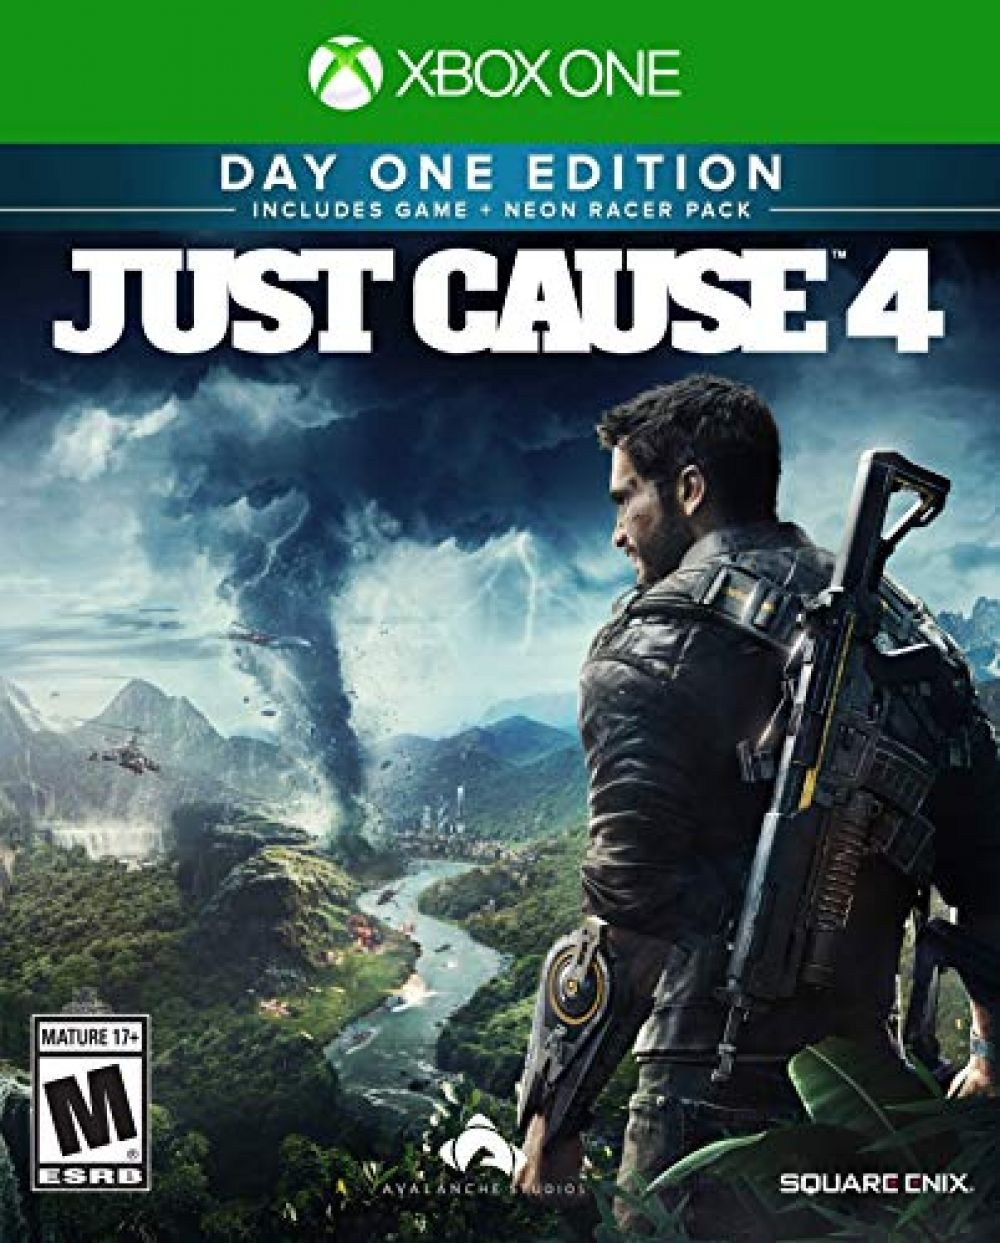 Just Cause 4 Xbox One Price 39.99 & FREE Shipping